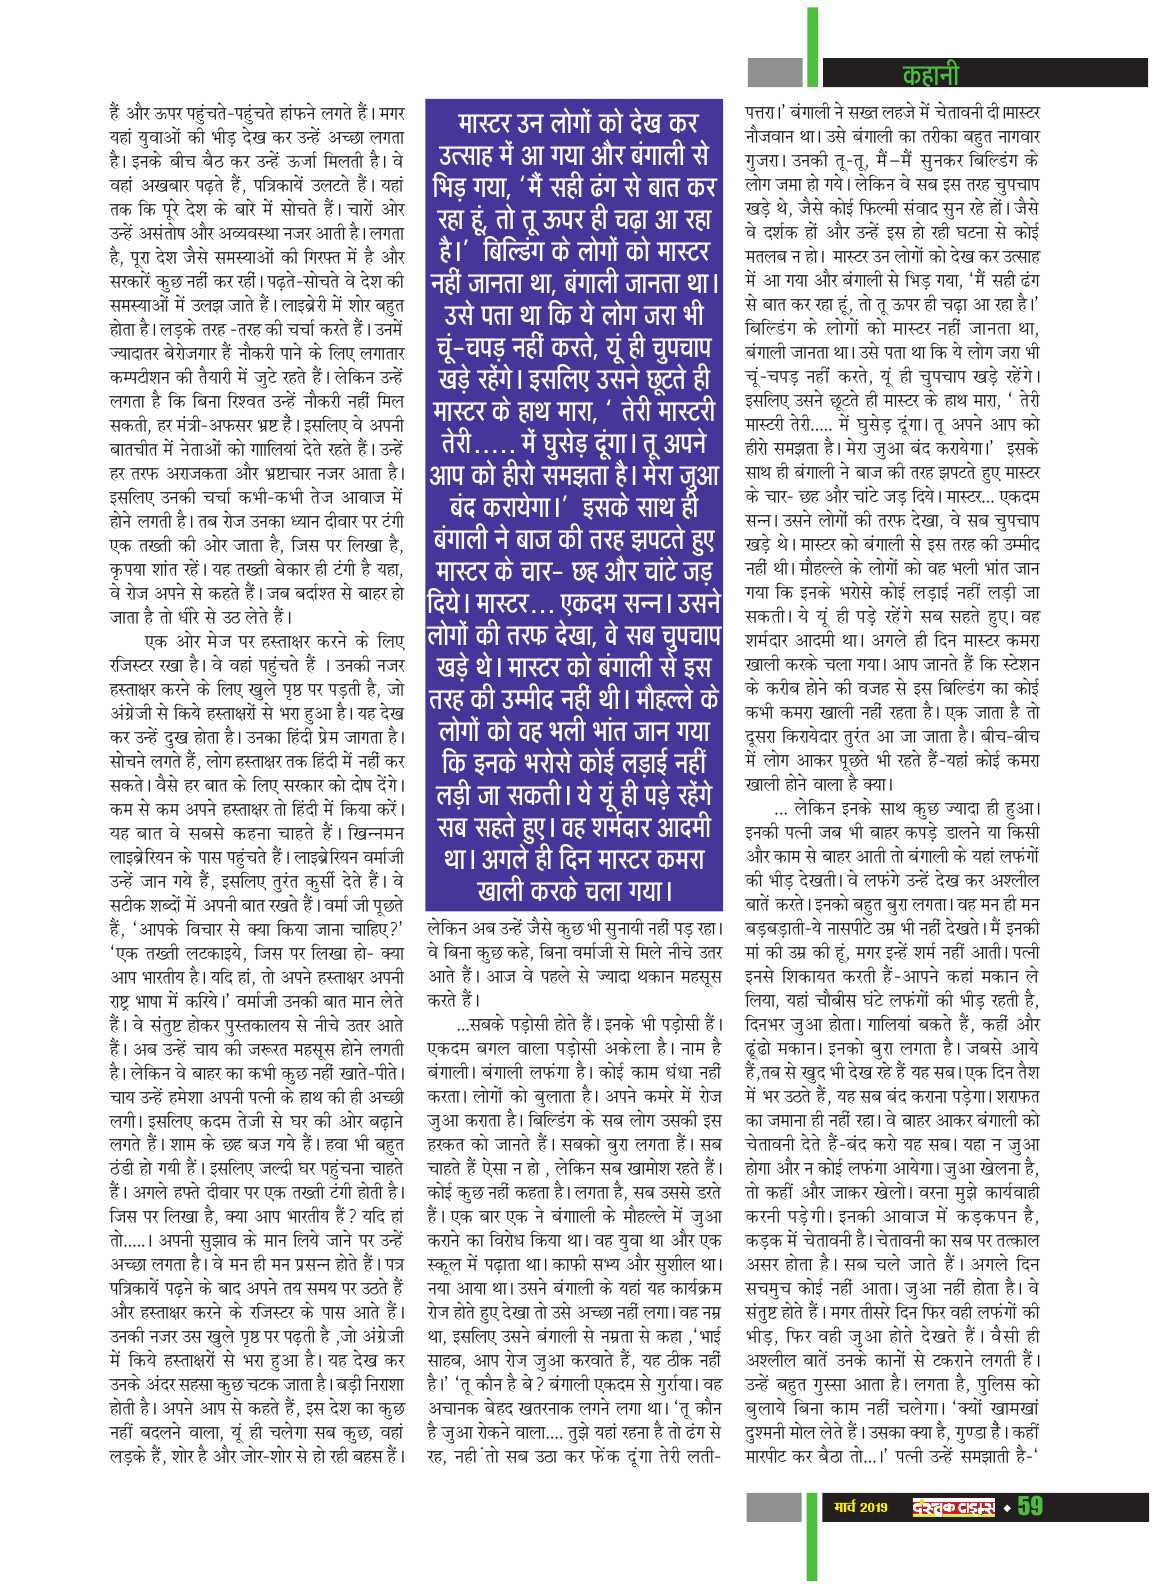 March 2019_Dastak Times new file61